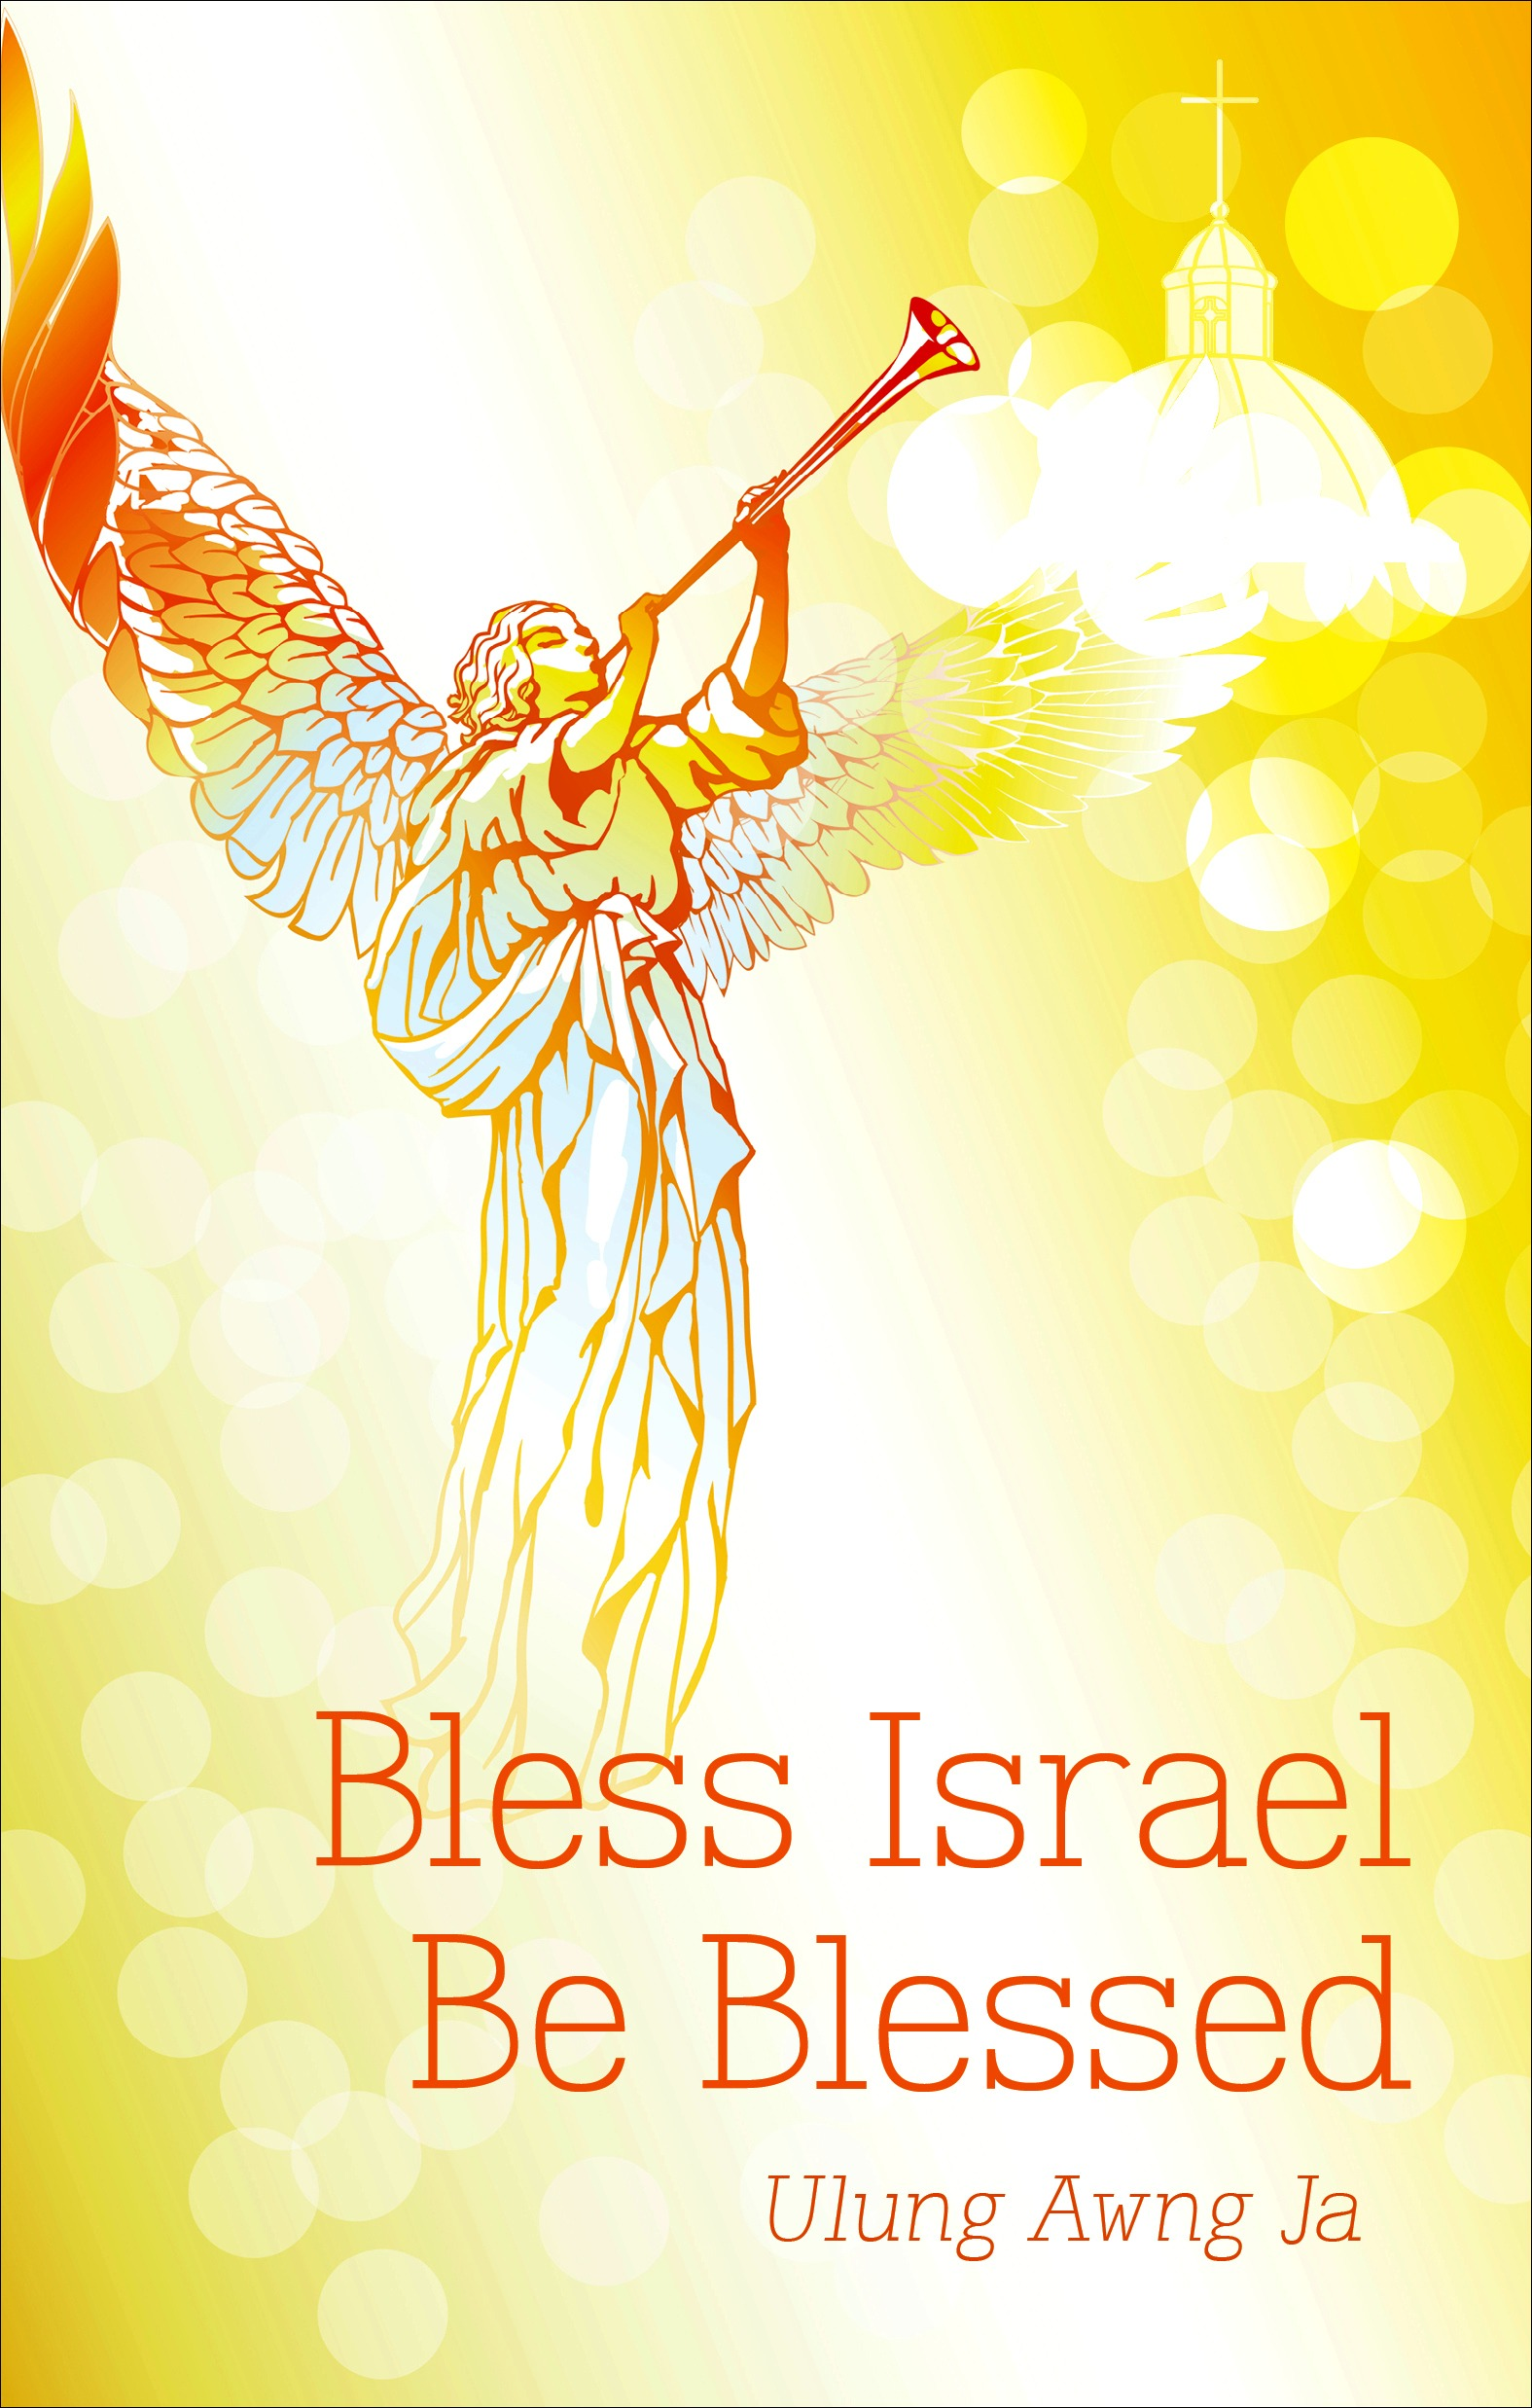 Bless Israel Be Blessed